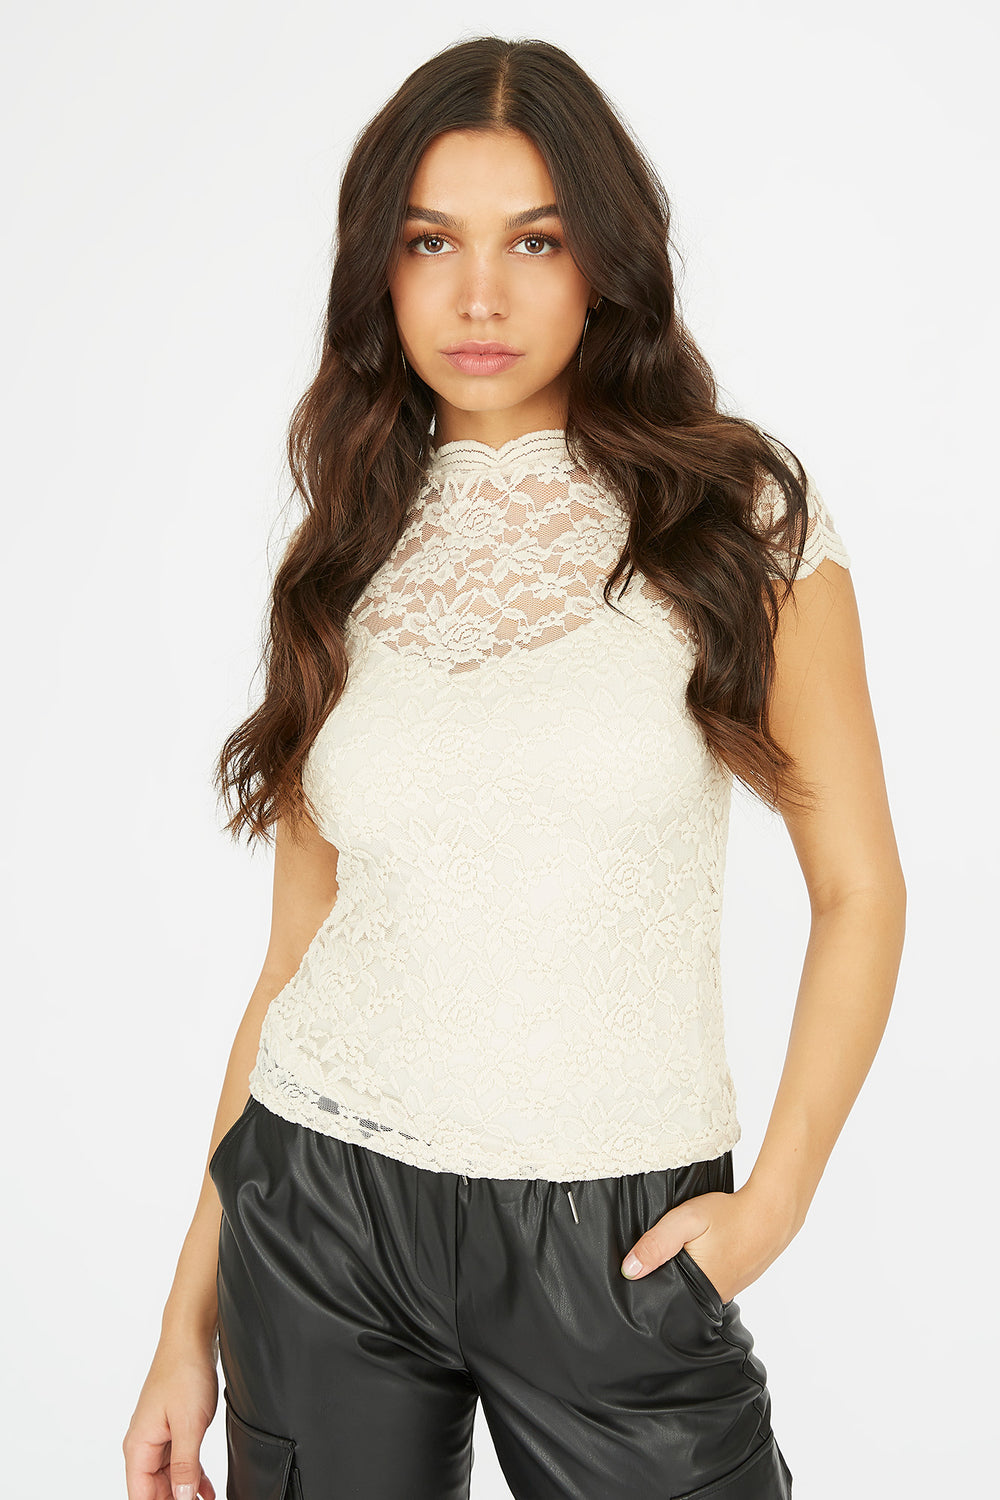 Lace Scallop Mock Neck Short Sleeve Top Natural